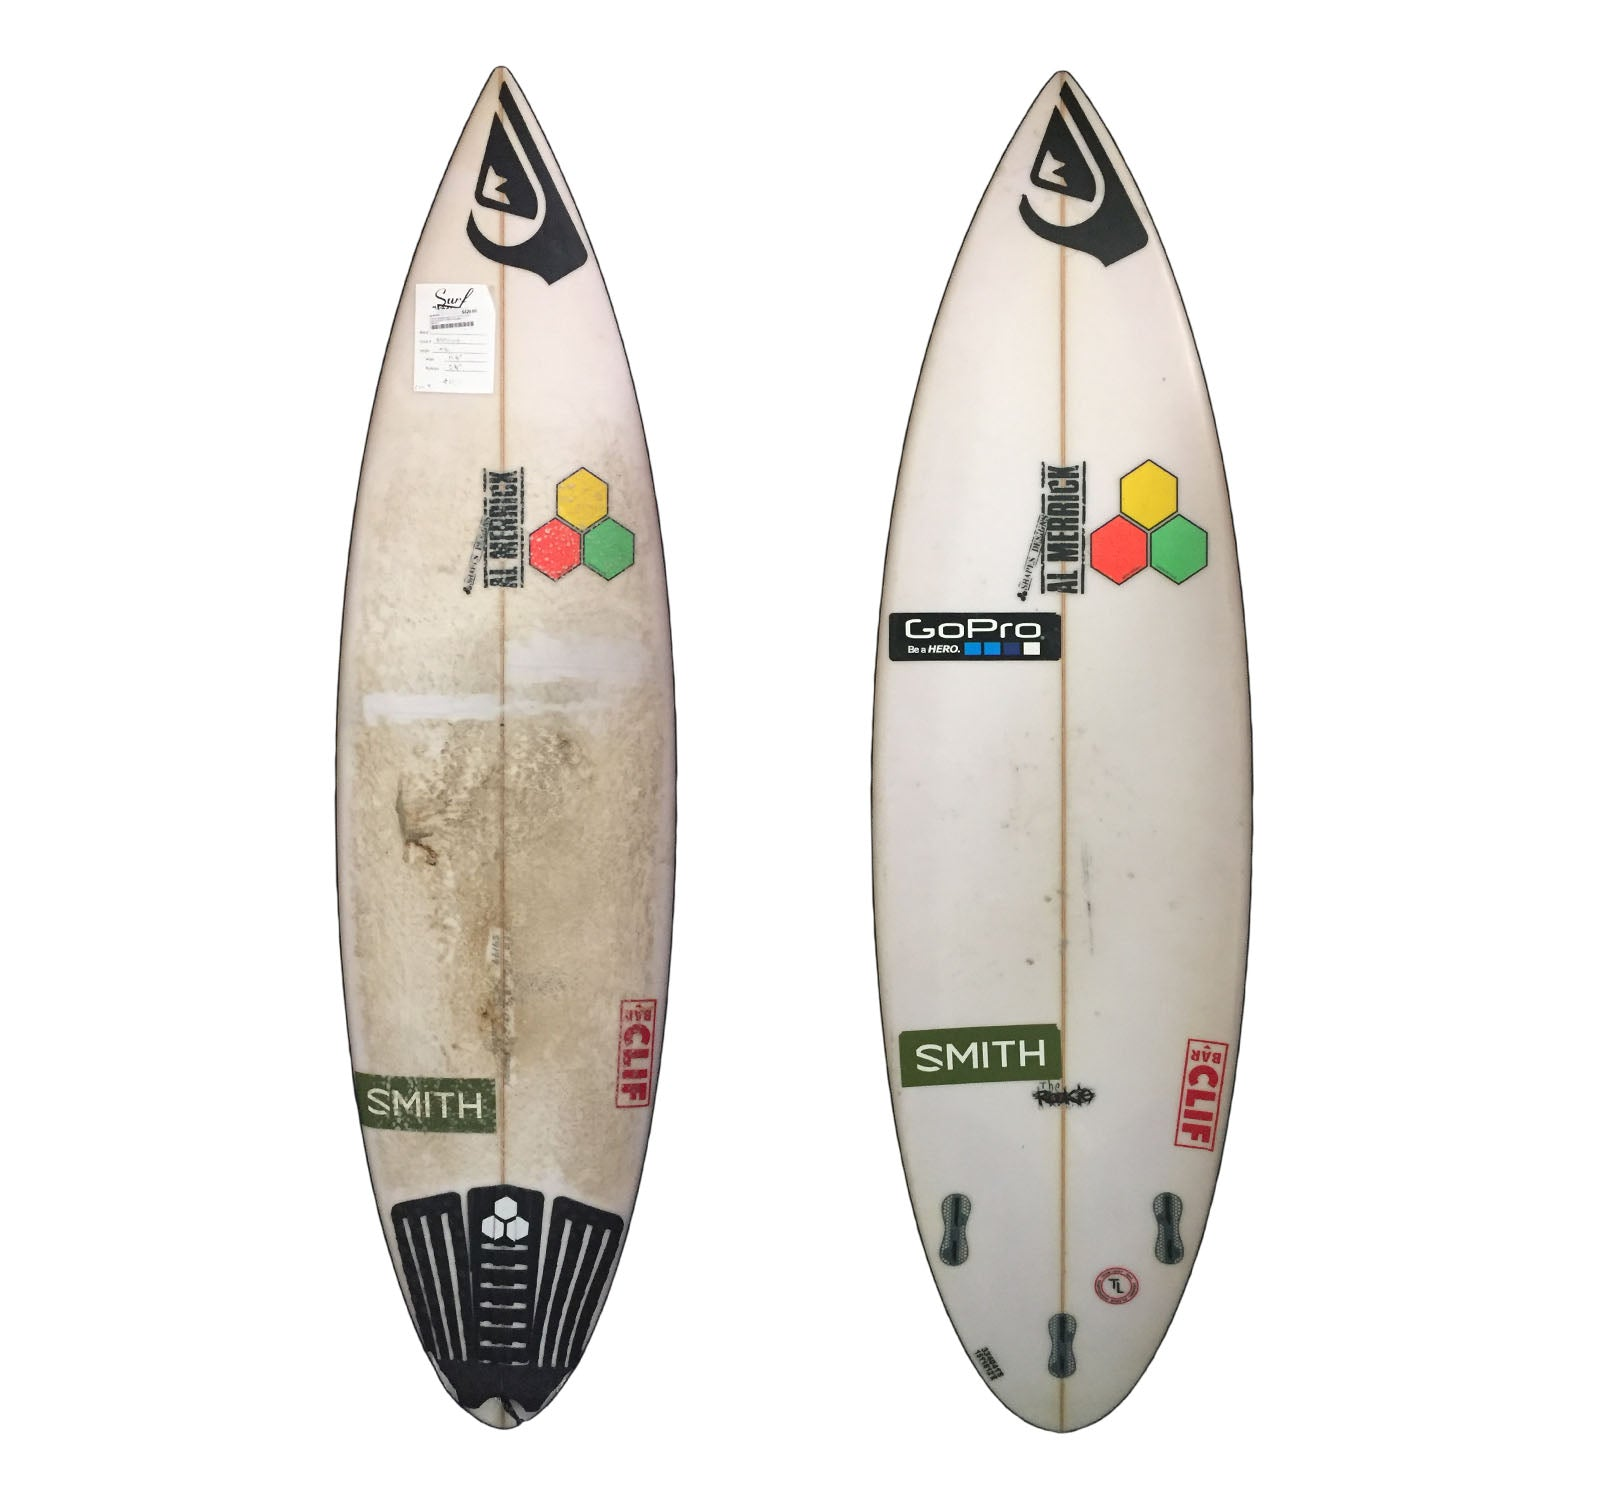 Channel Islands Proton 5'10 x 18 1/4 x 2 1/4 Used Surfboard (Team Custom For Lakey Peterson)